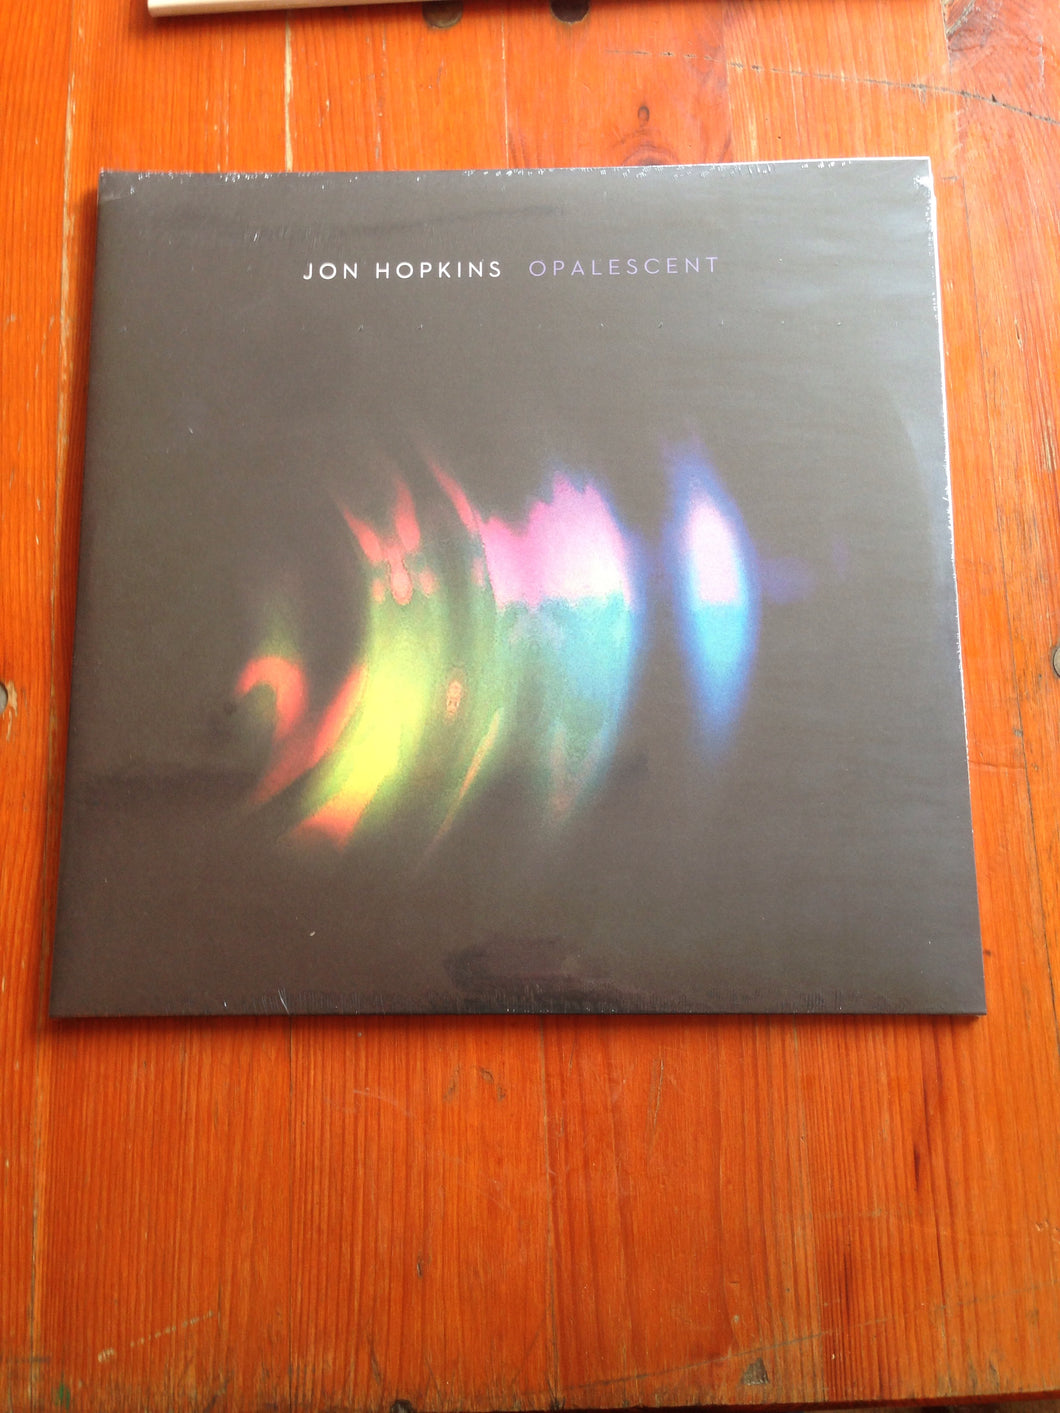 Jon Hopkins - Opalescent